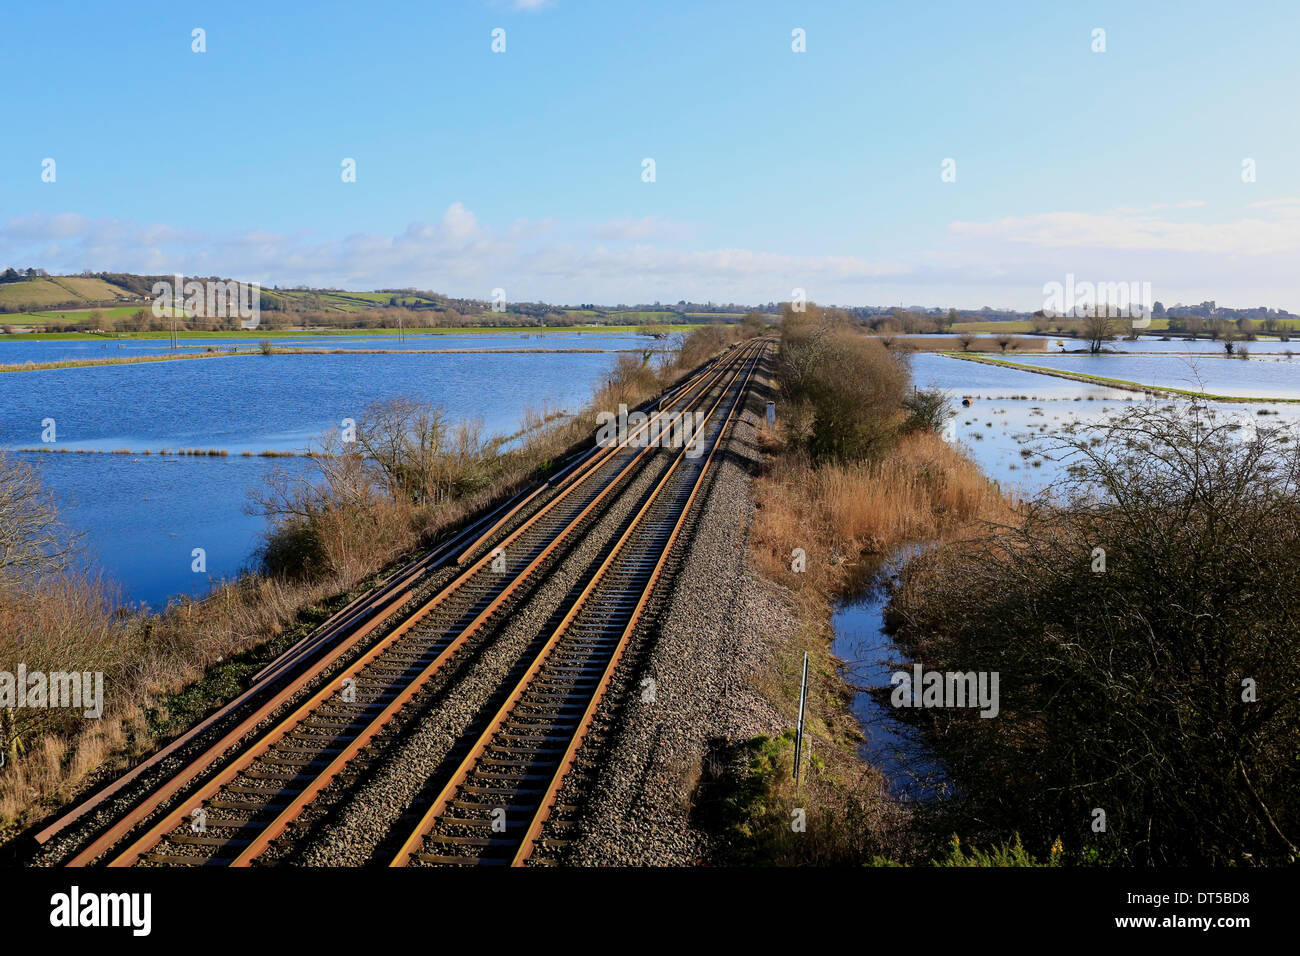 Flooding UK, Somerset Levels 2014. Rail line surrounded by flooded farm land on West Sedge Moor - Stock Image